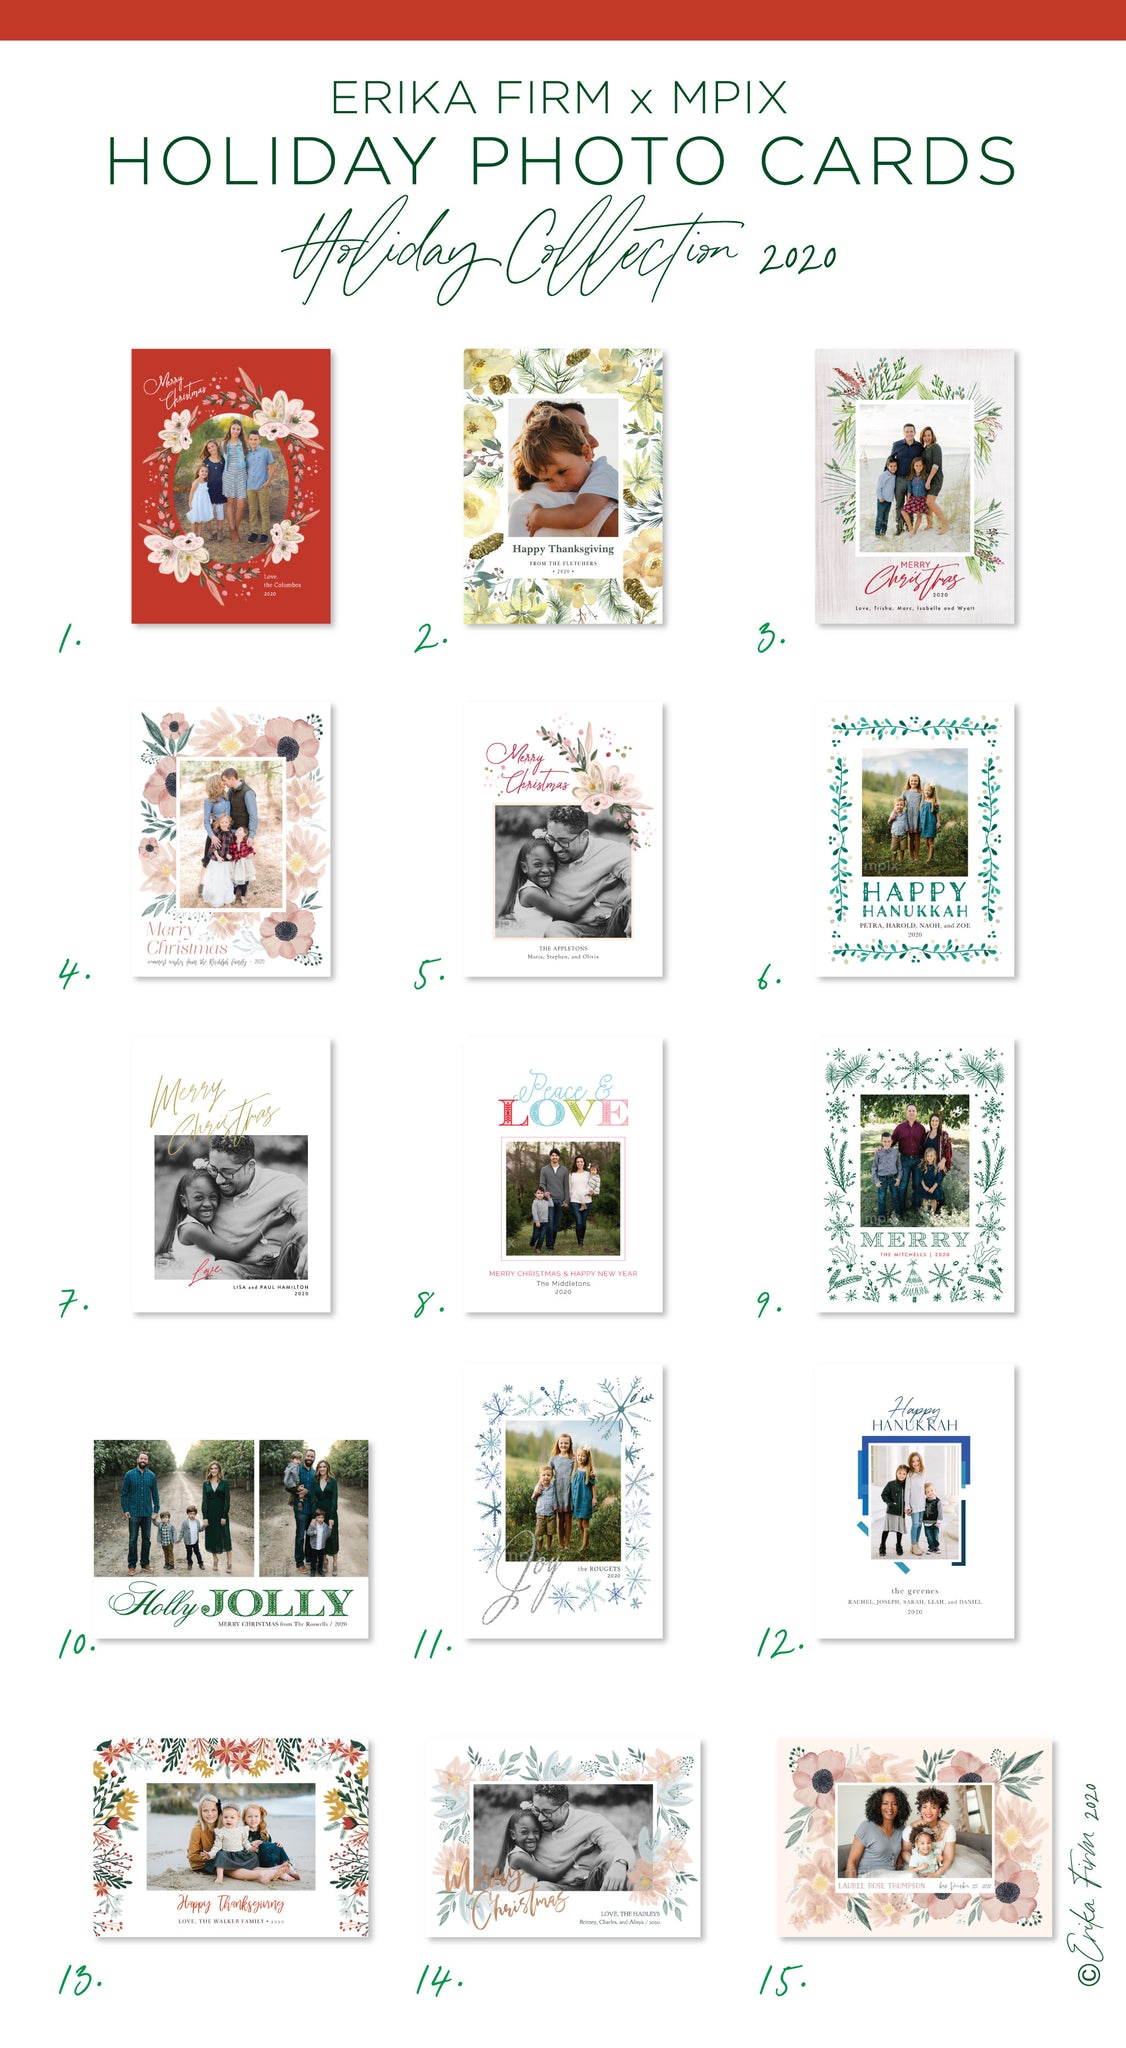 Erika Firm's holiday collection of photo cards for mPIX 2020